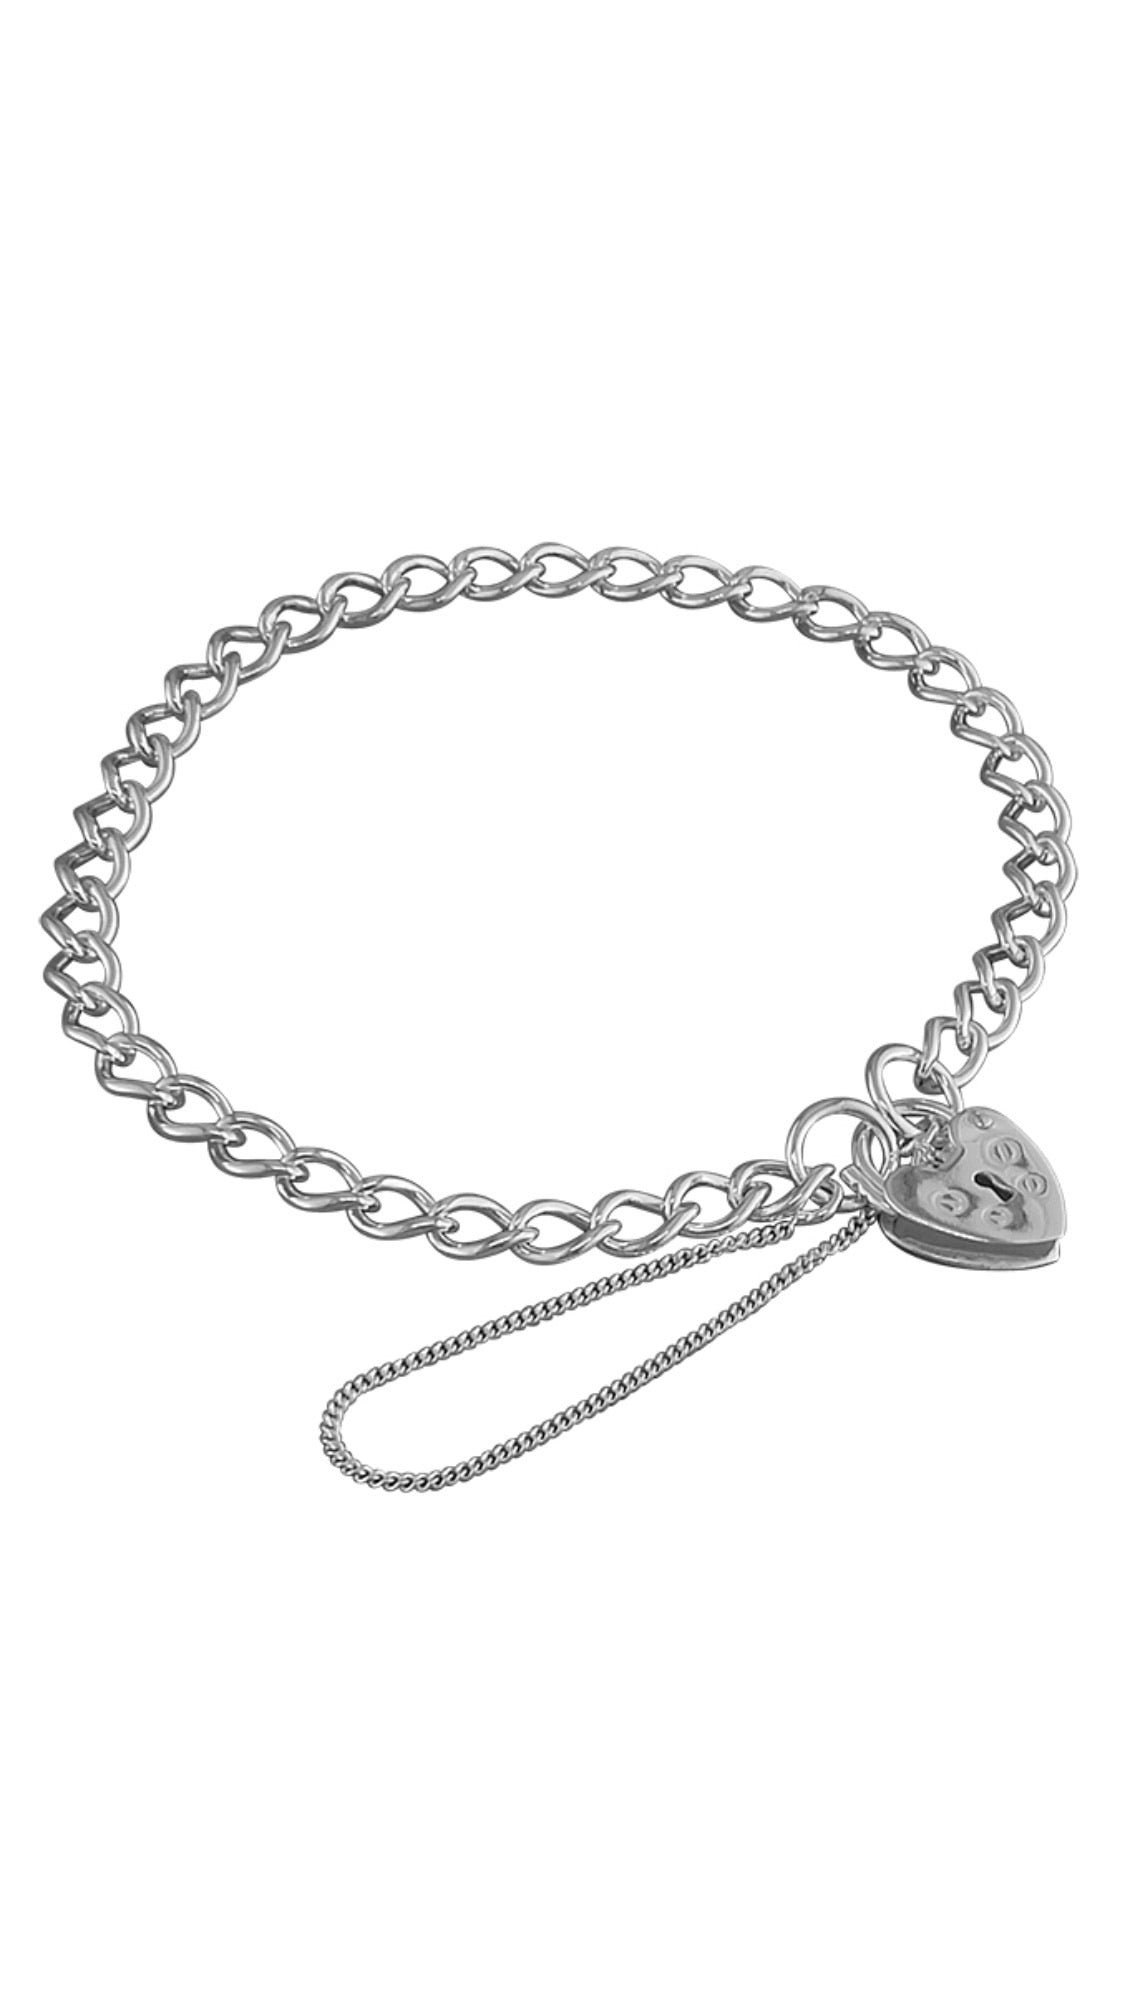 Light weight woman's charm bracelet